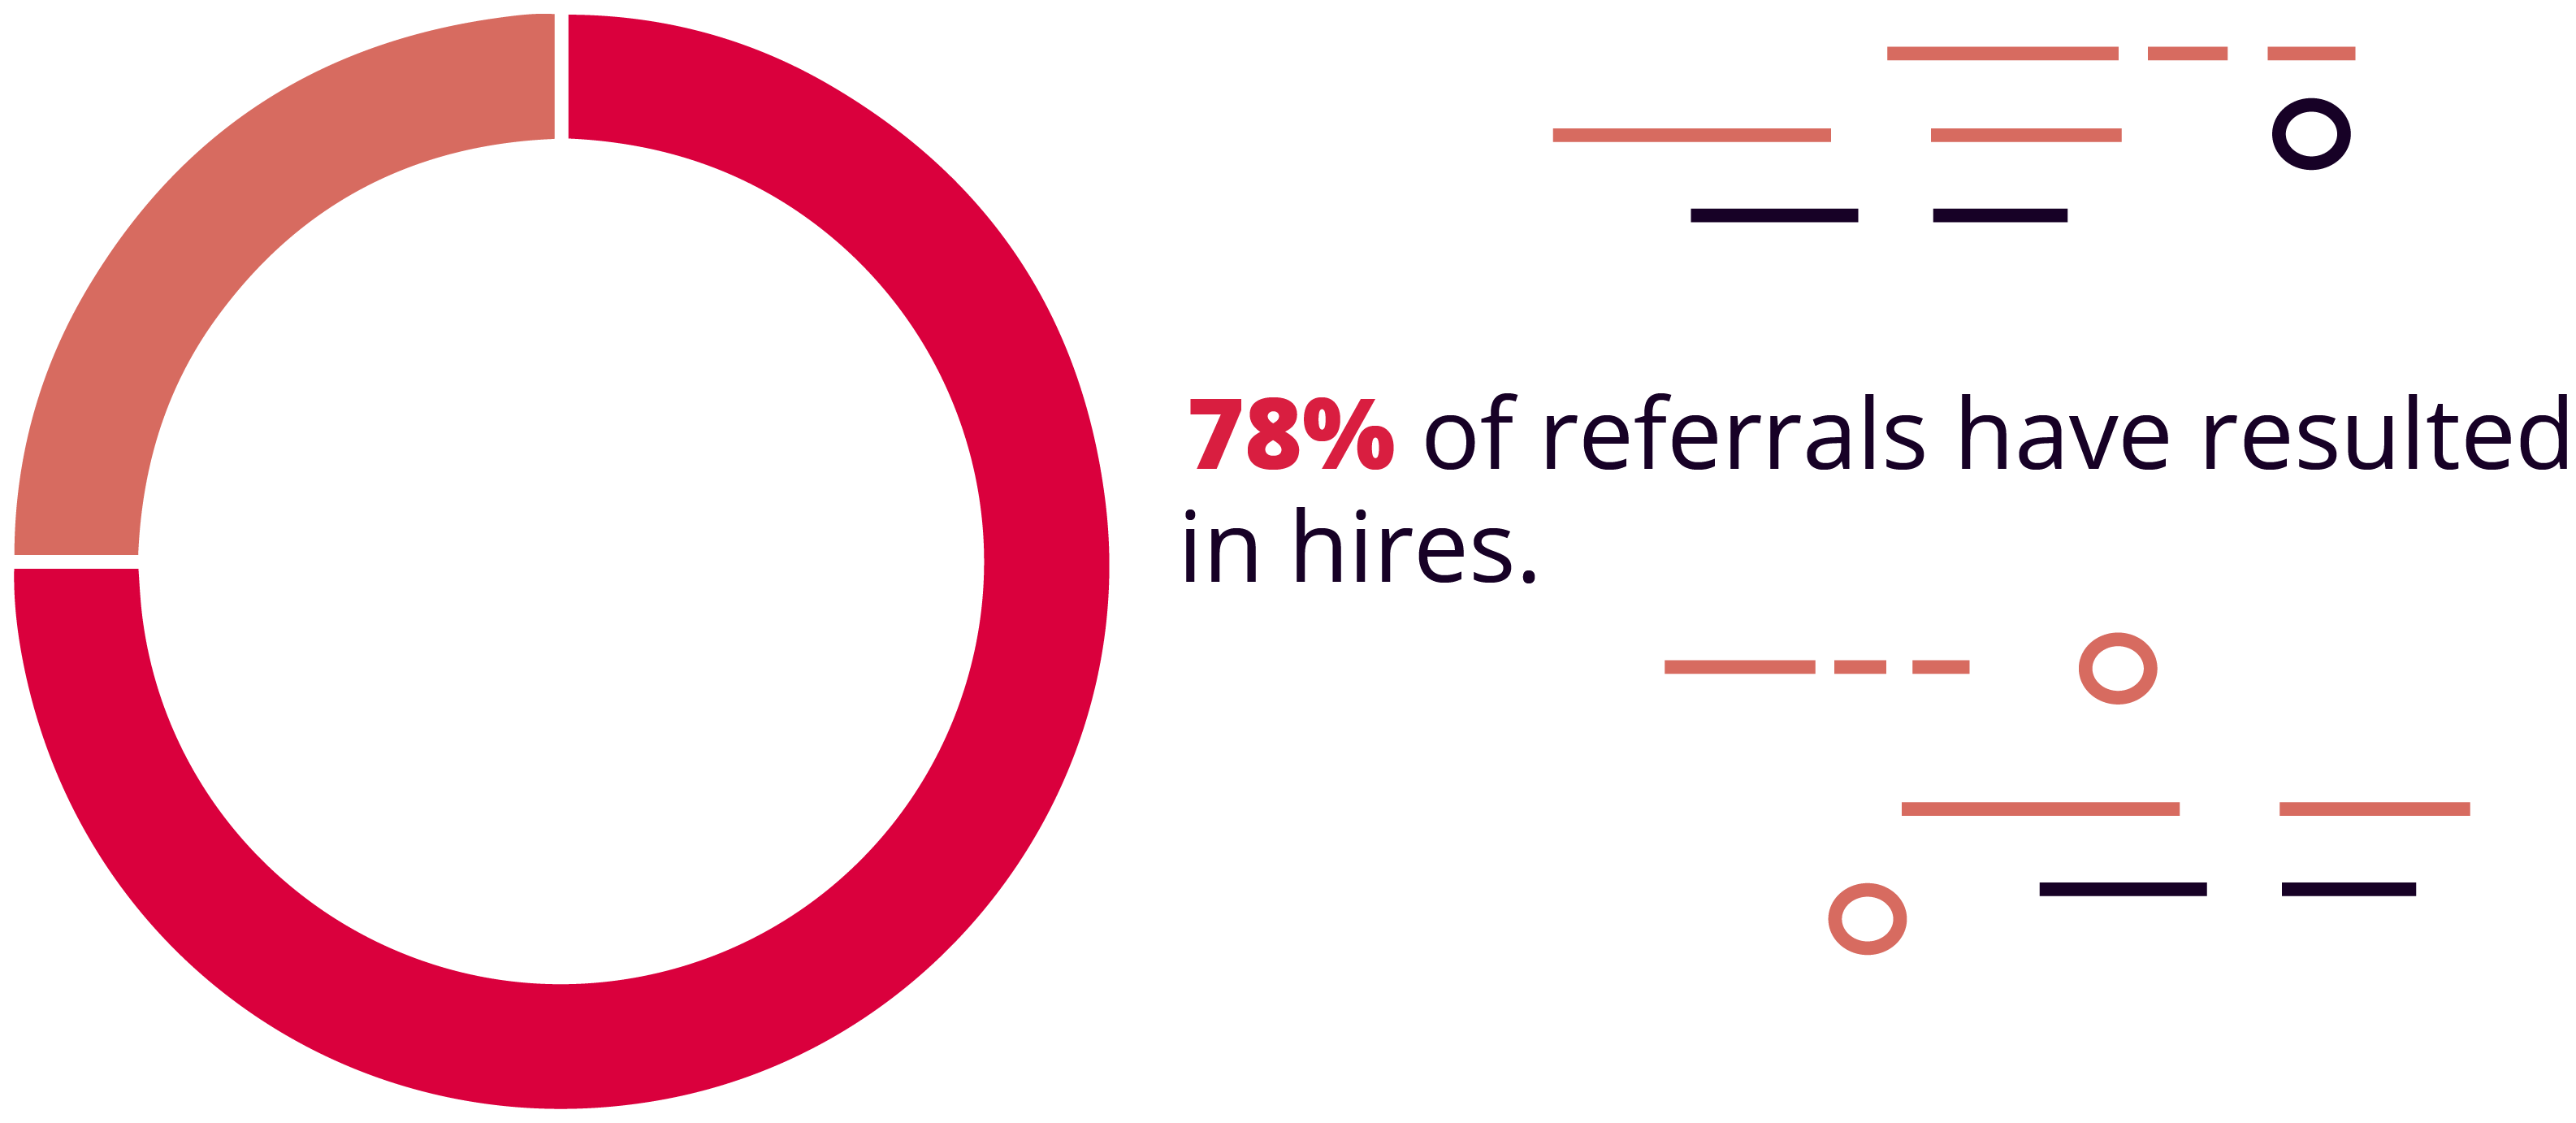 78% of referrals result in hires